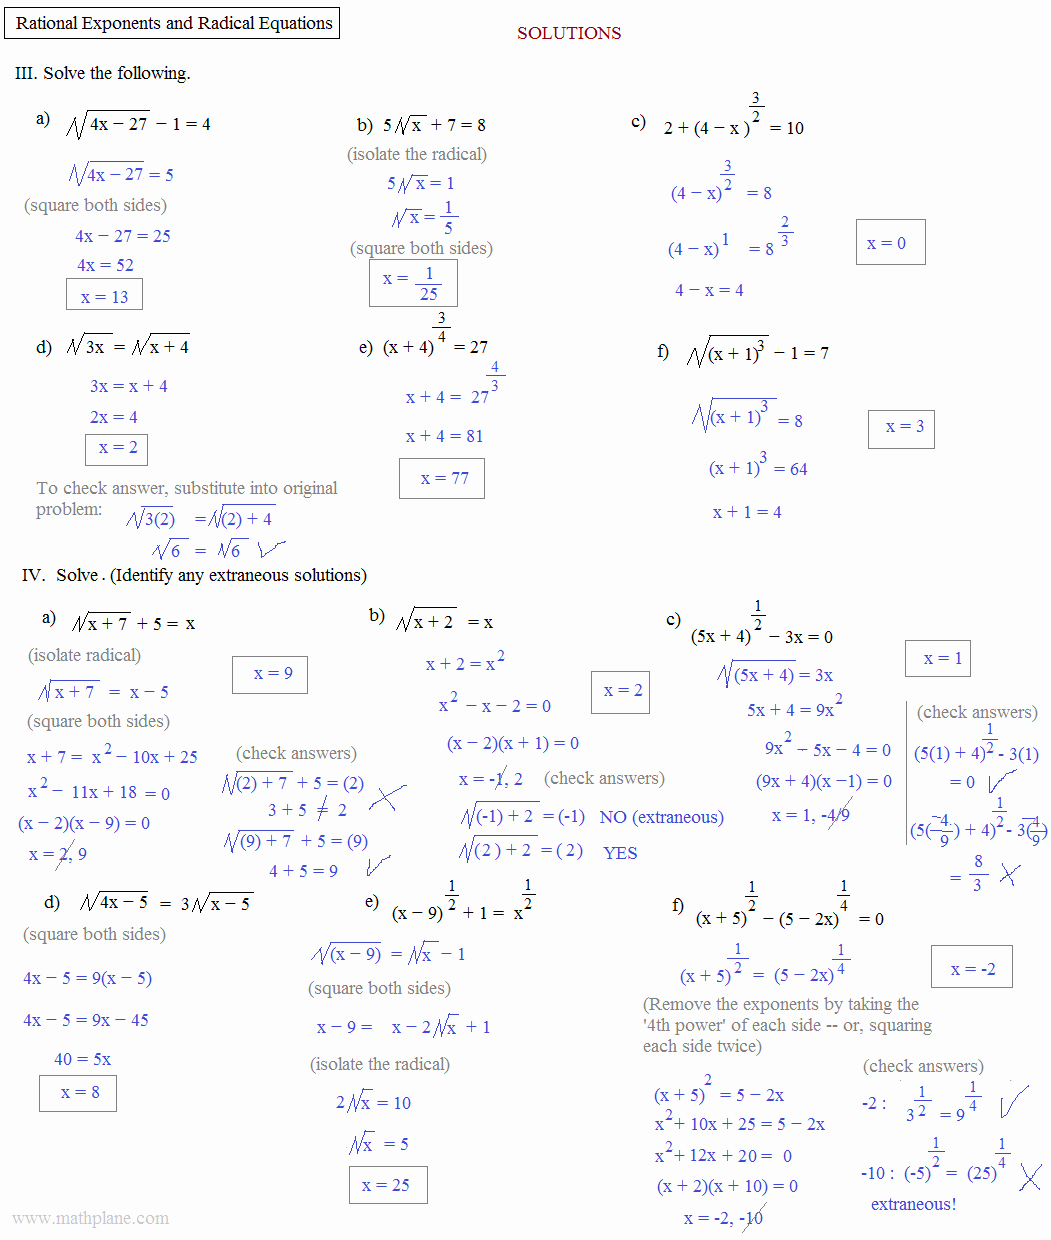 Radical and Rational Exponents Worksheet Luxury Math Plane Rational Exponents and Radical Equations